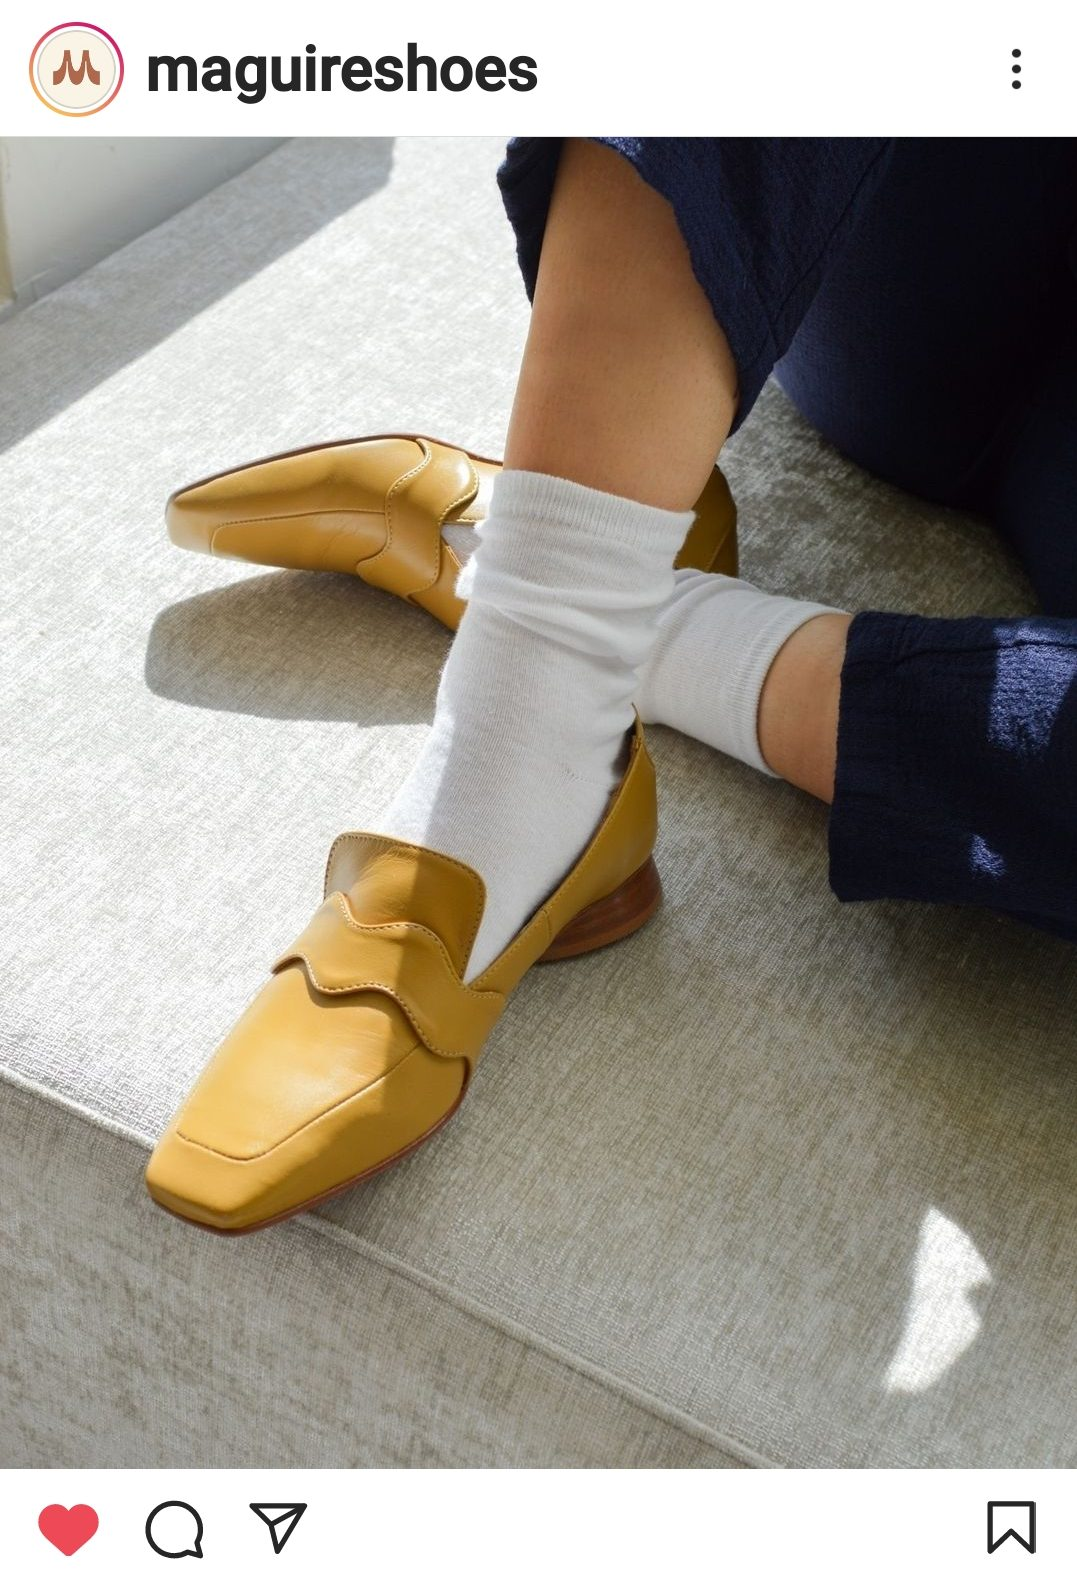 socks and sandals trend